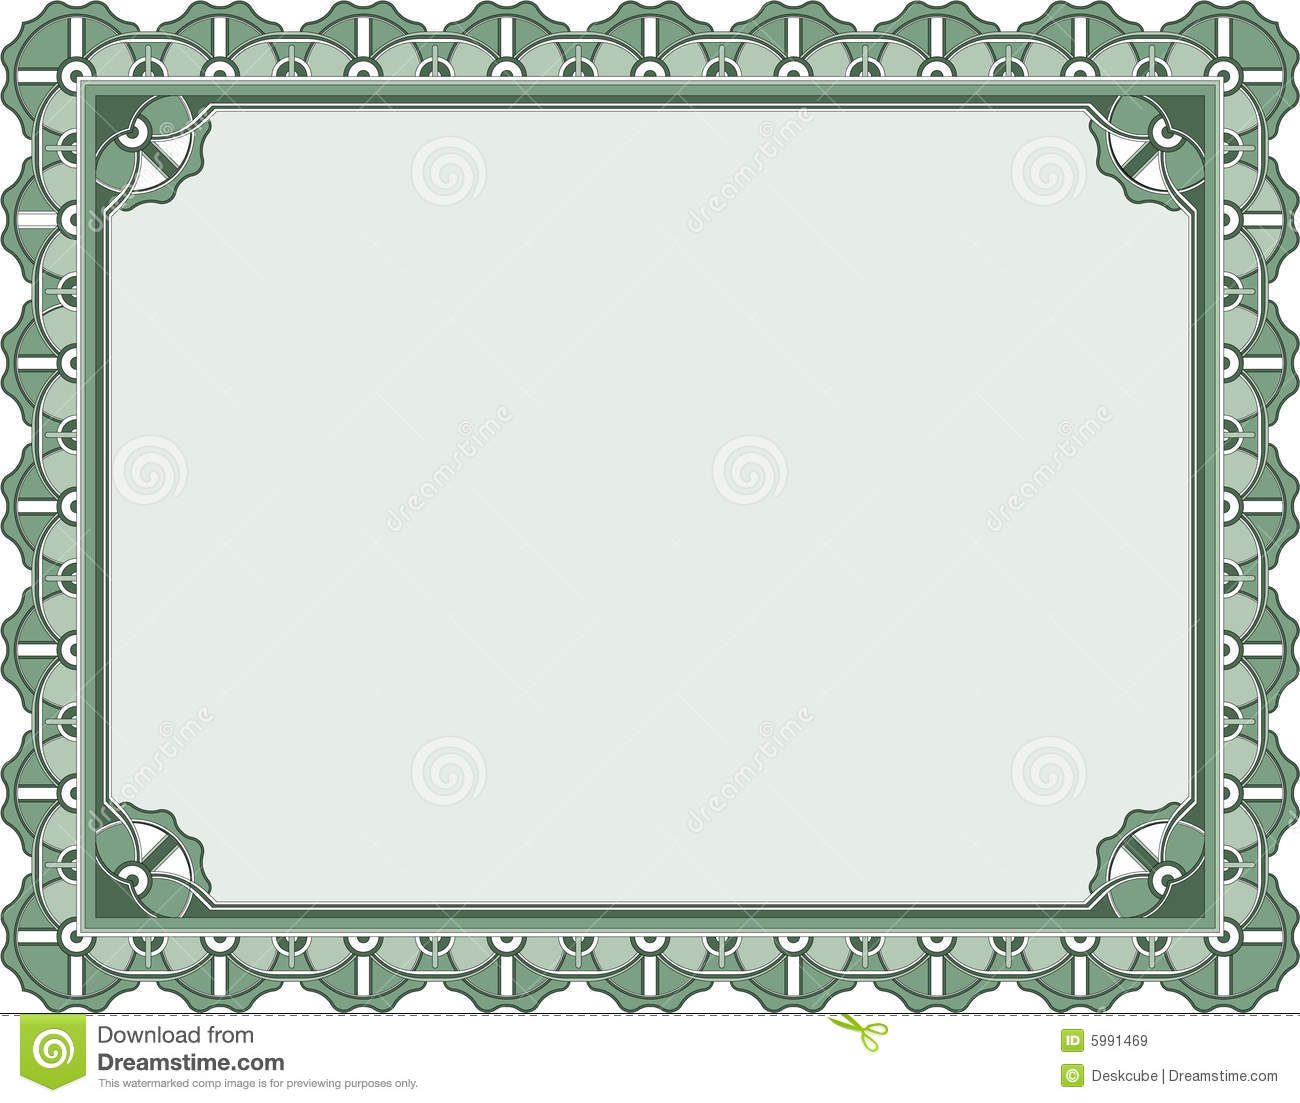 Award Certificate Template Royalty Free Stock Images - Image: 5991469